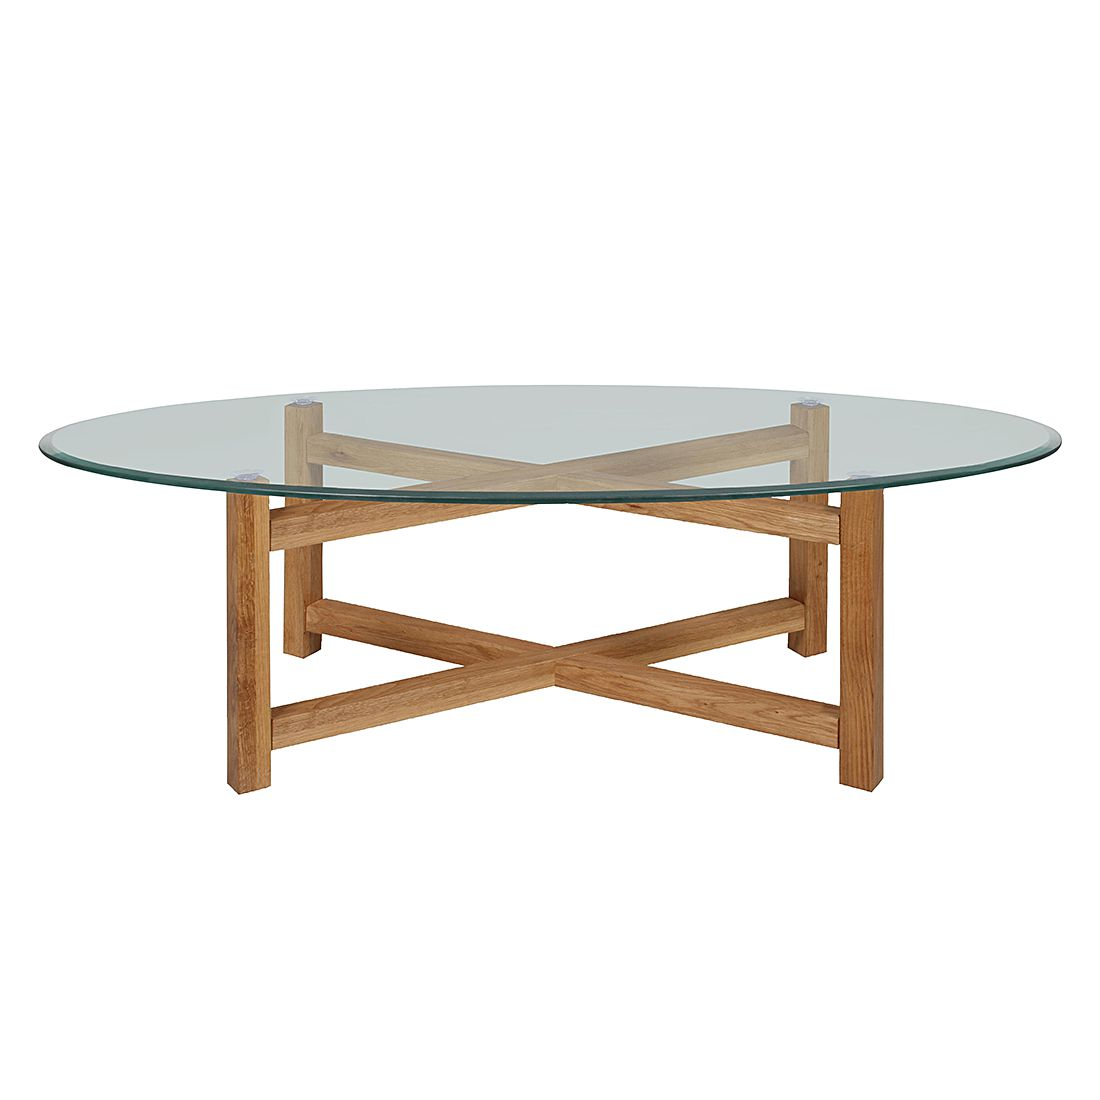 Table basse Meliara